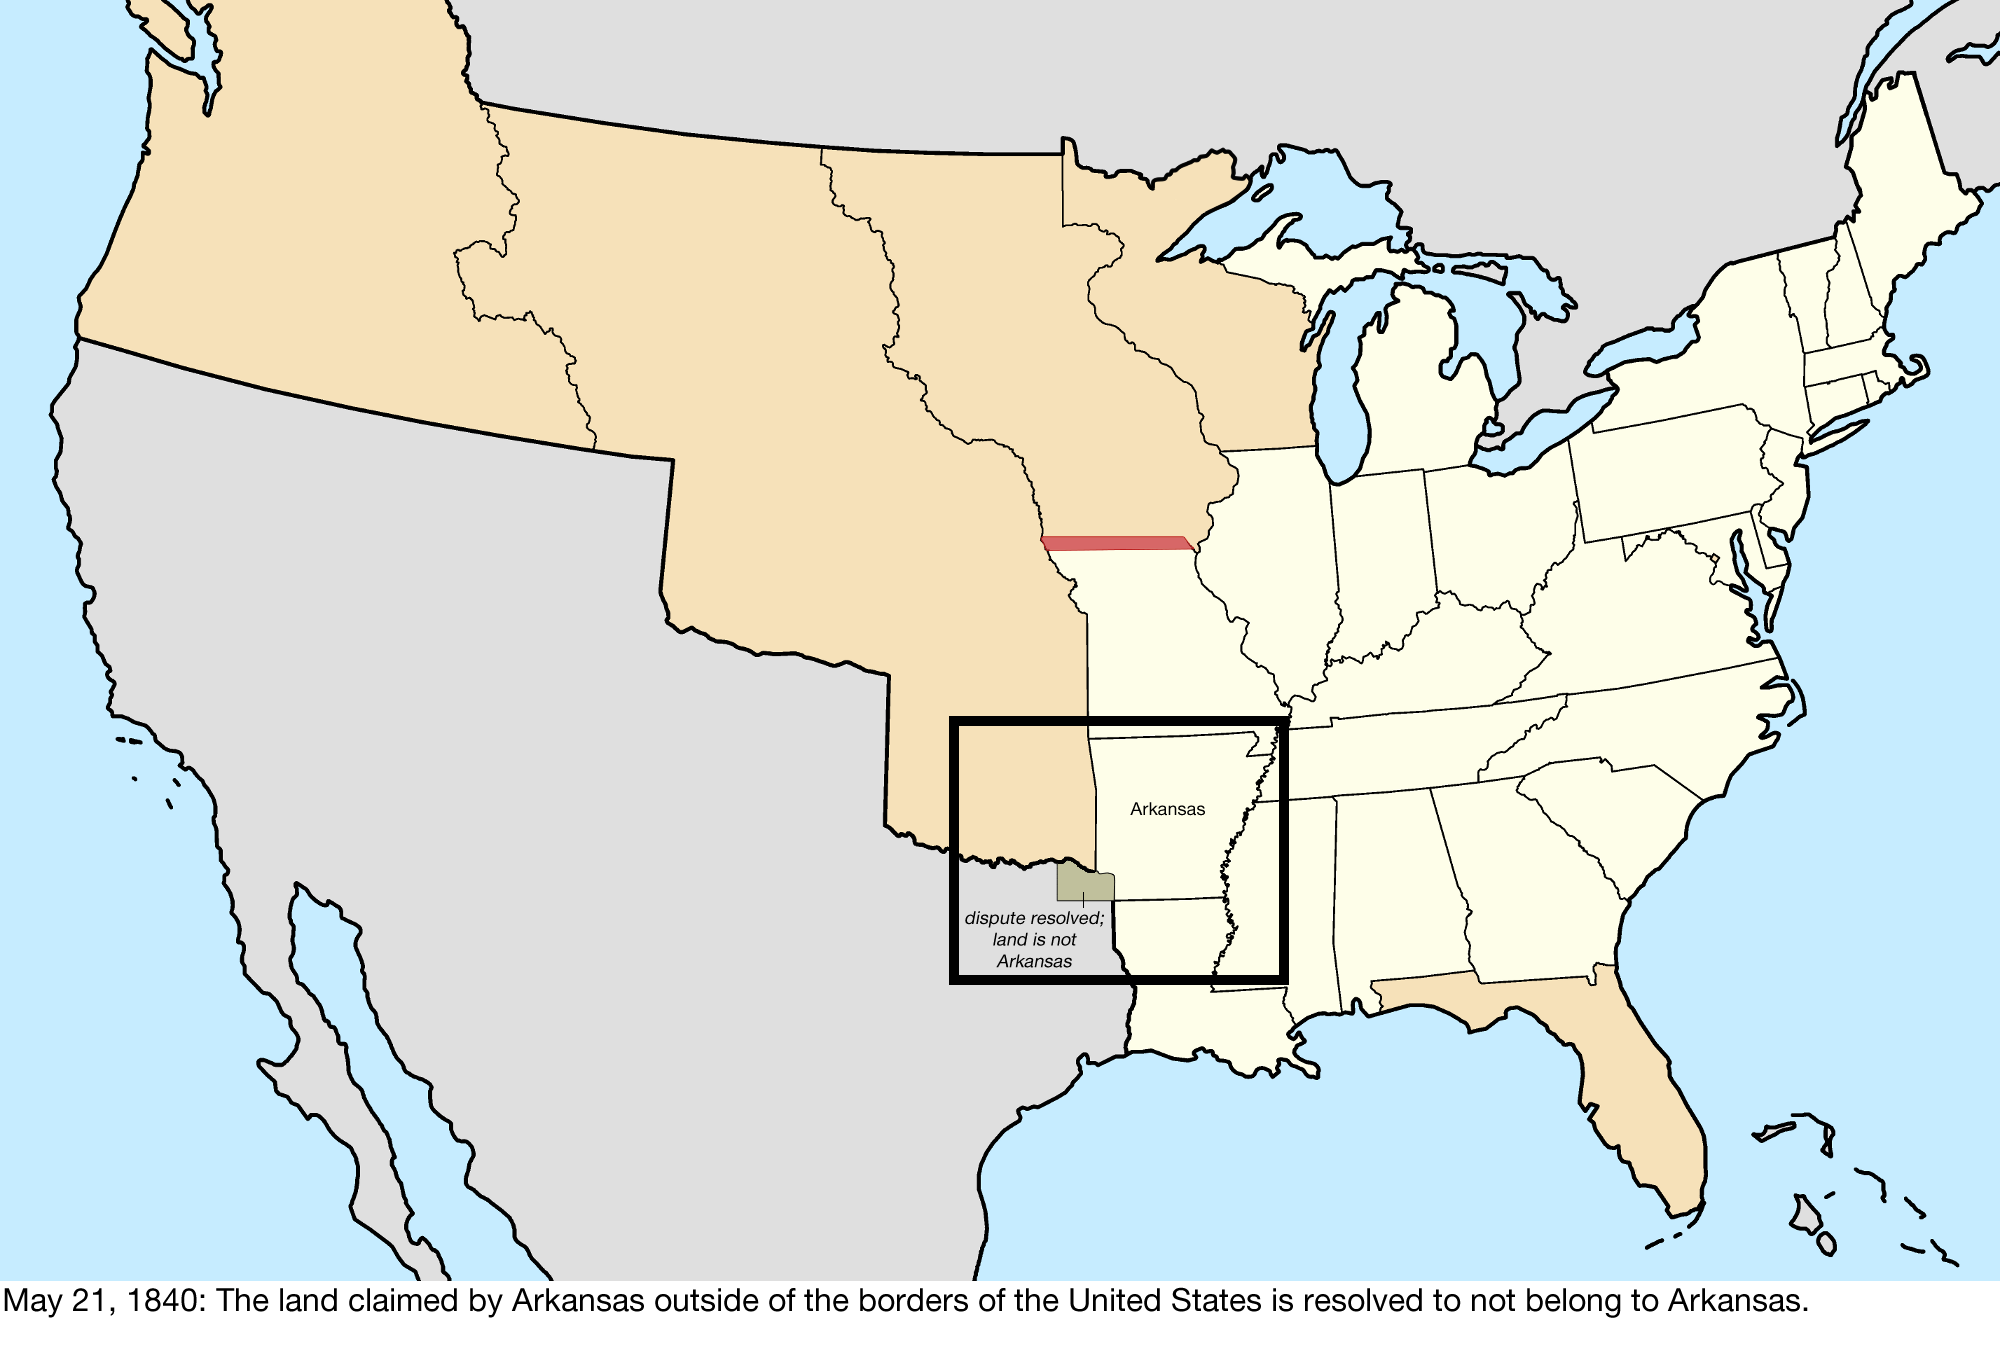 Fileunited States Central Change 1840 05 21png Wikipedia - Us-map-1840